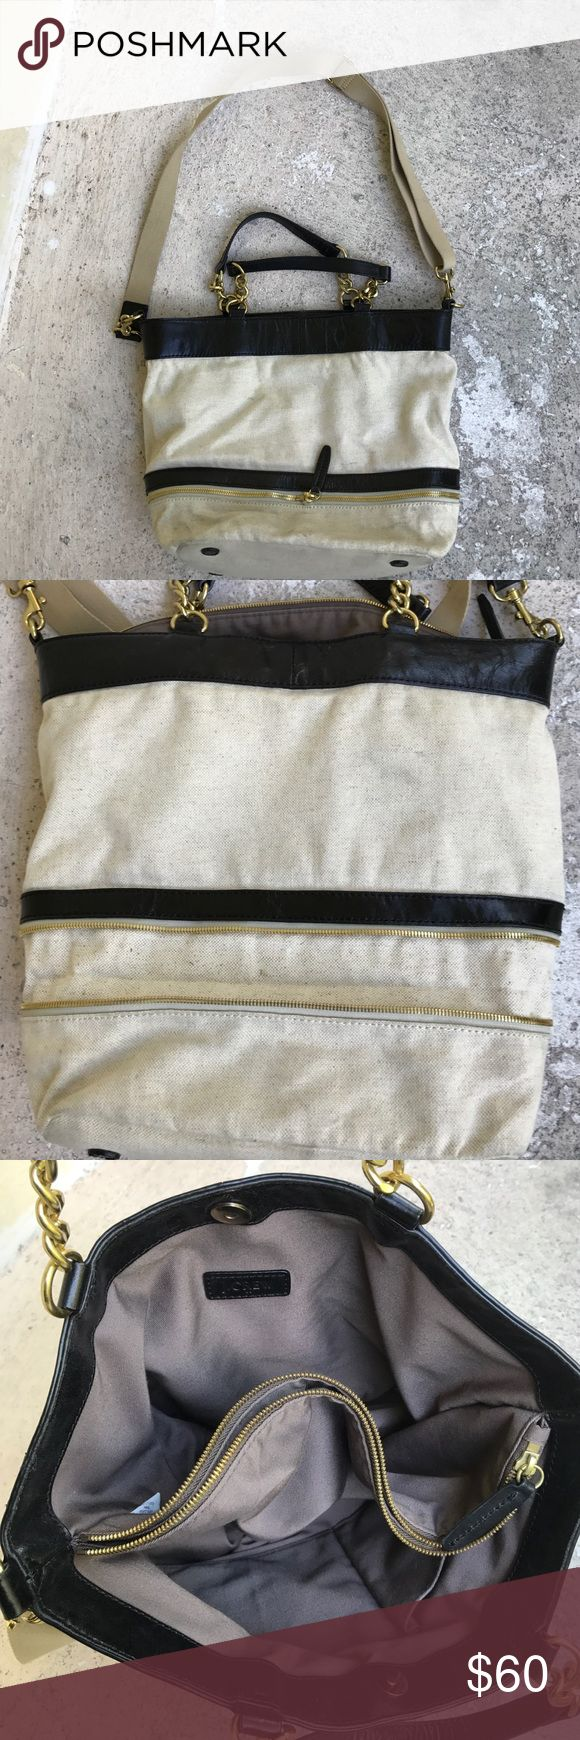 J Crew bag Cream colored canvas with black leather trim bag, Is in very good shape but needs to be thrown in the washing machine to wash. Inside is very clean has two large Side with a zippered divider. Bag is in very good condition J Crew Bags Totes